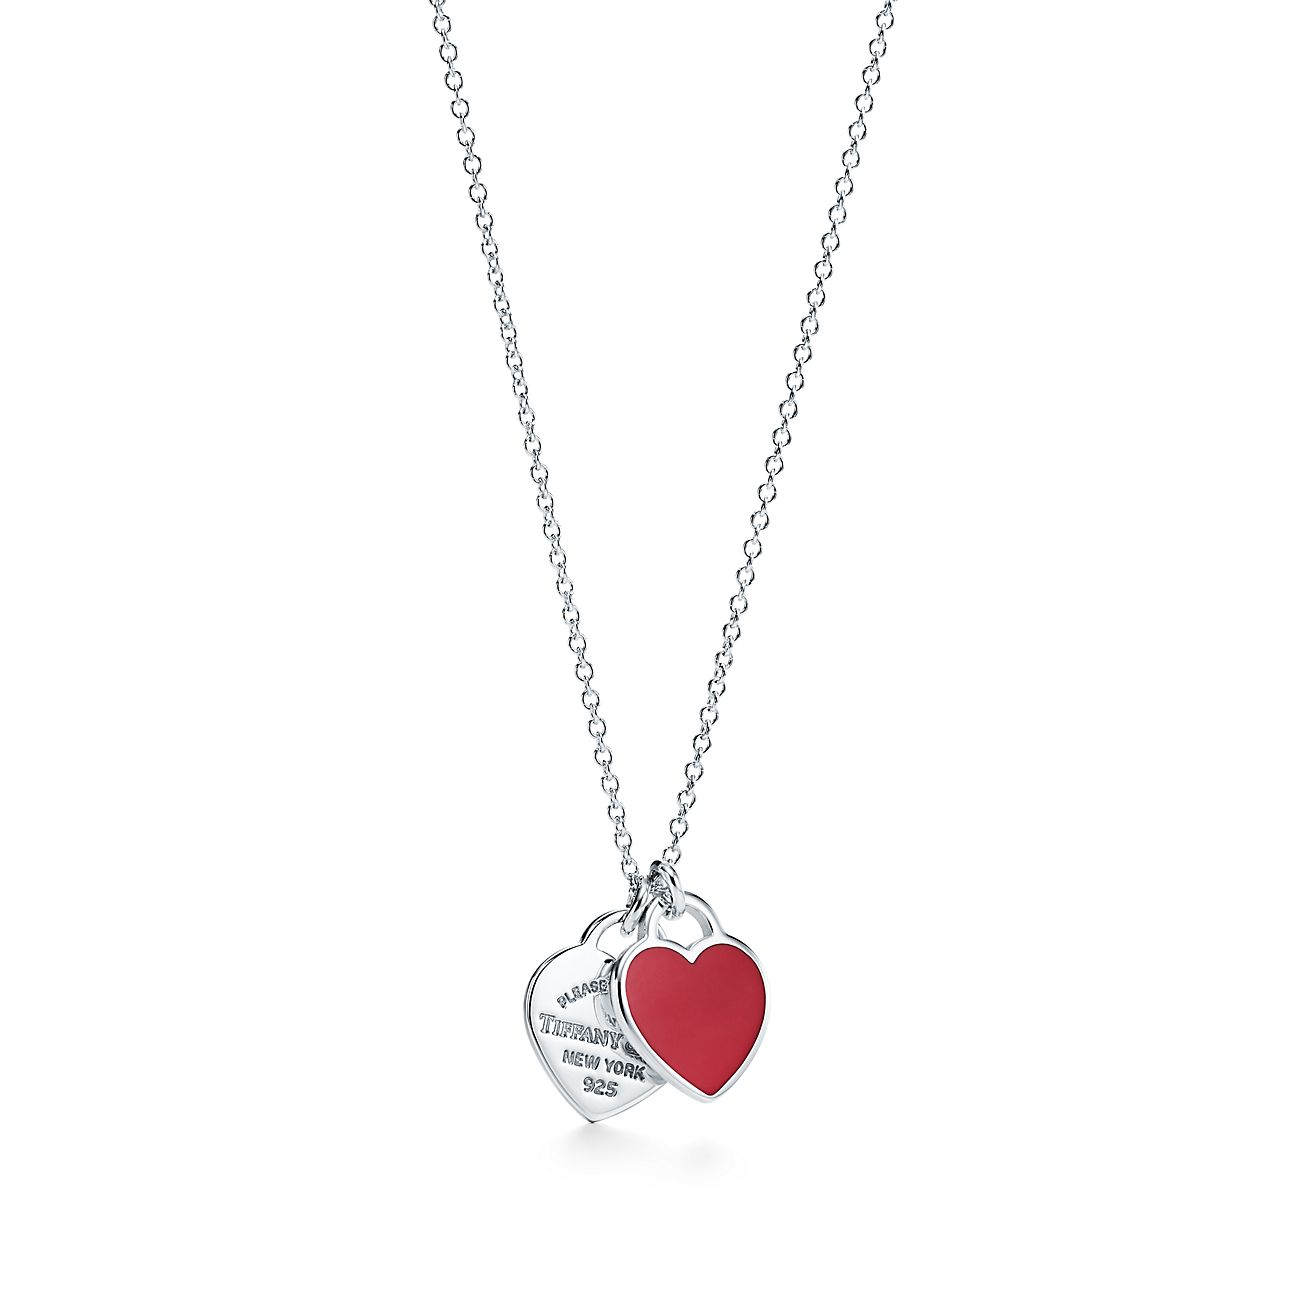 Valentine/'s day gift small heart necklace tiny silver heart necklace Minimalist heart necklace mini heart necklace mother/'s day